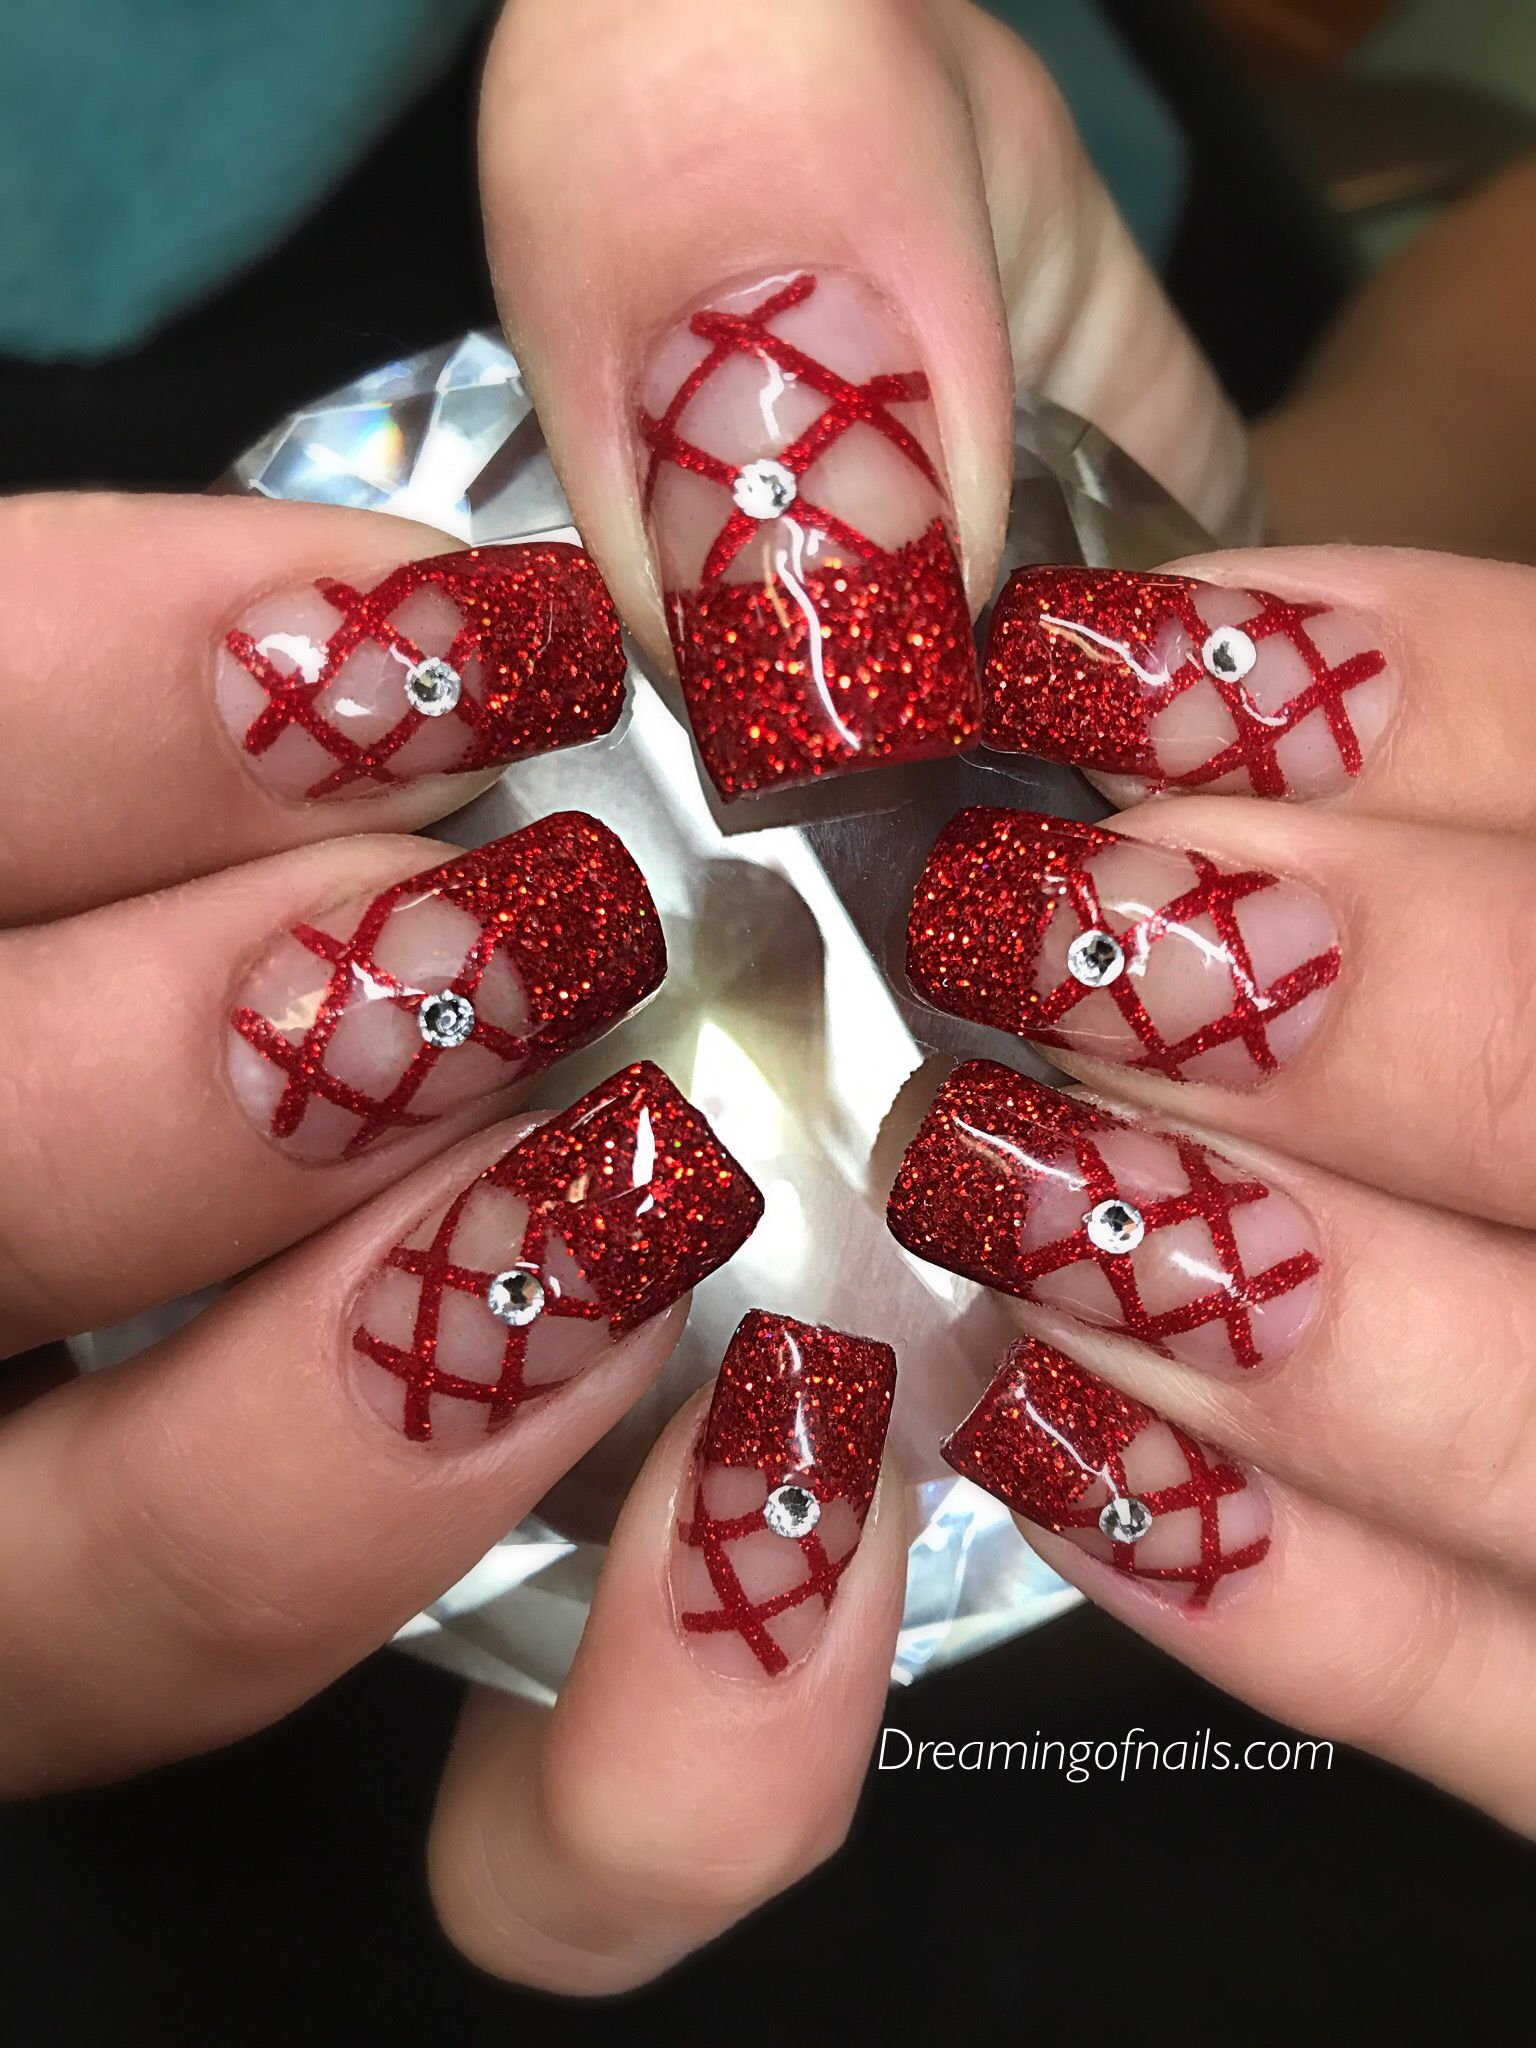 6 fun red nail designs for December | Red glitter, Red nail designs ...